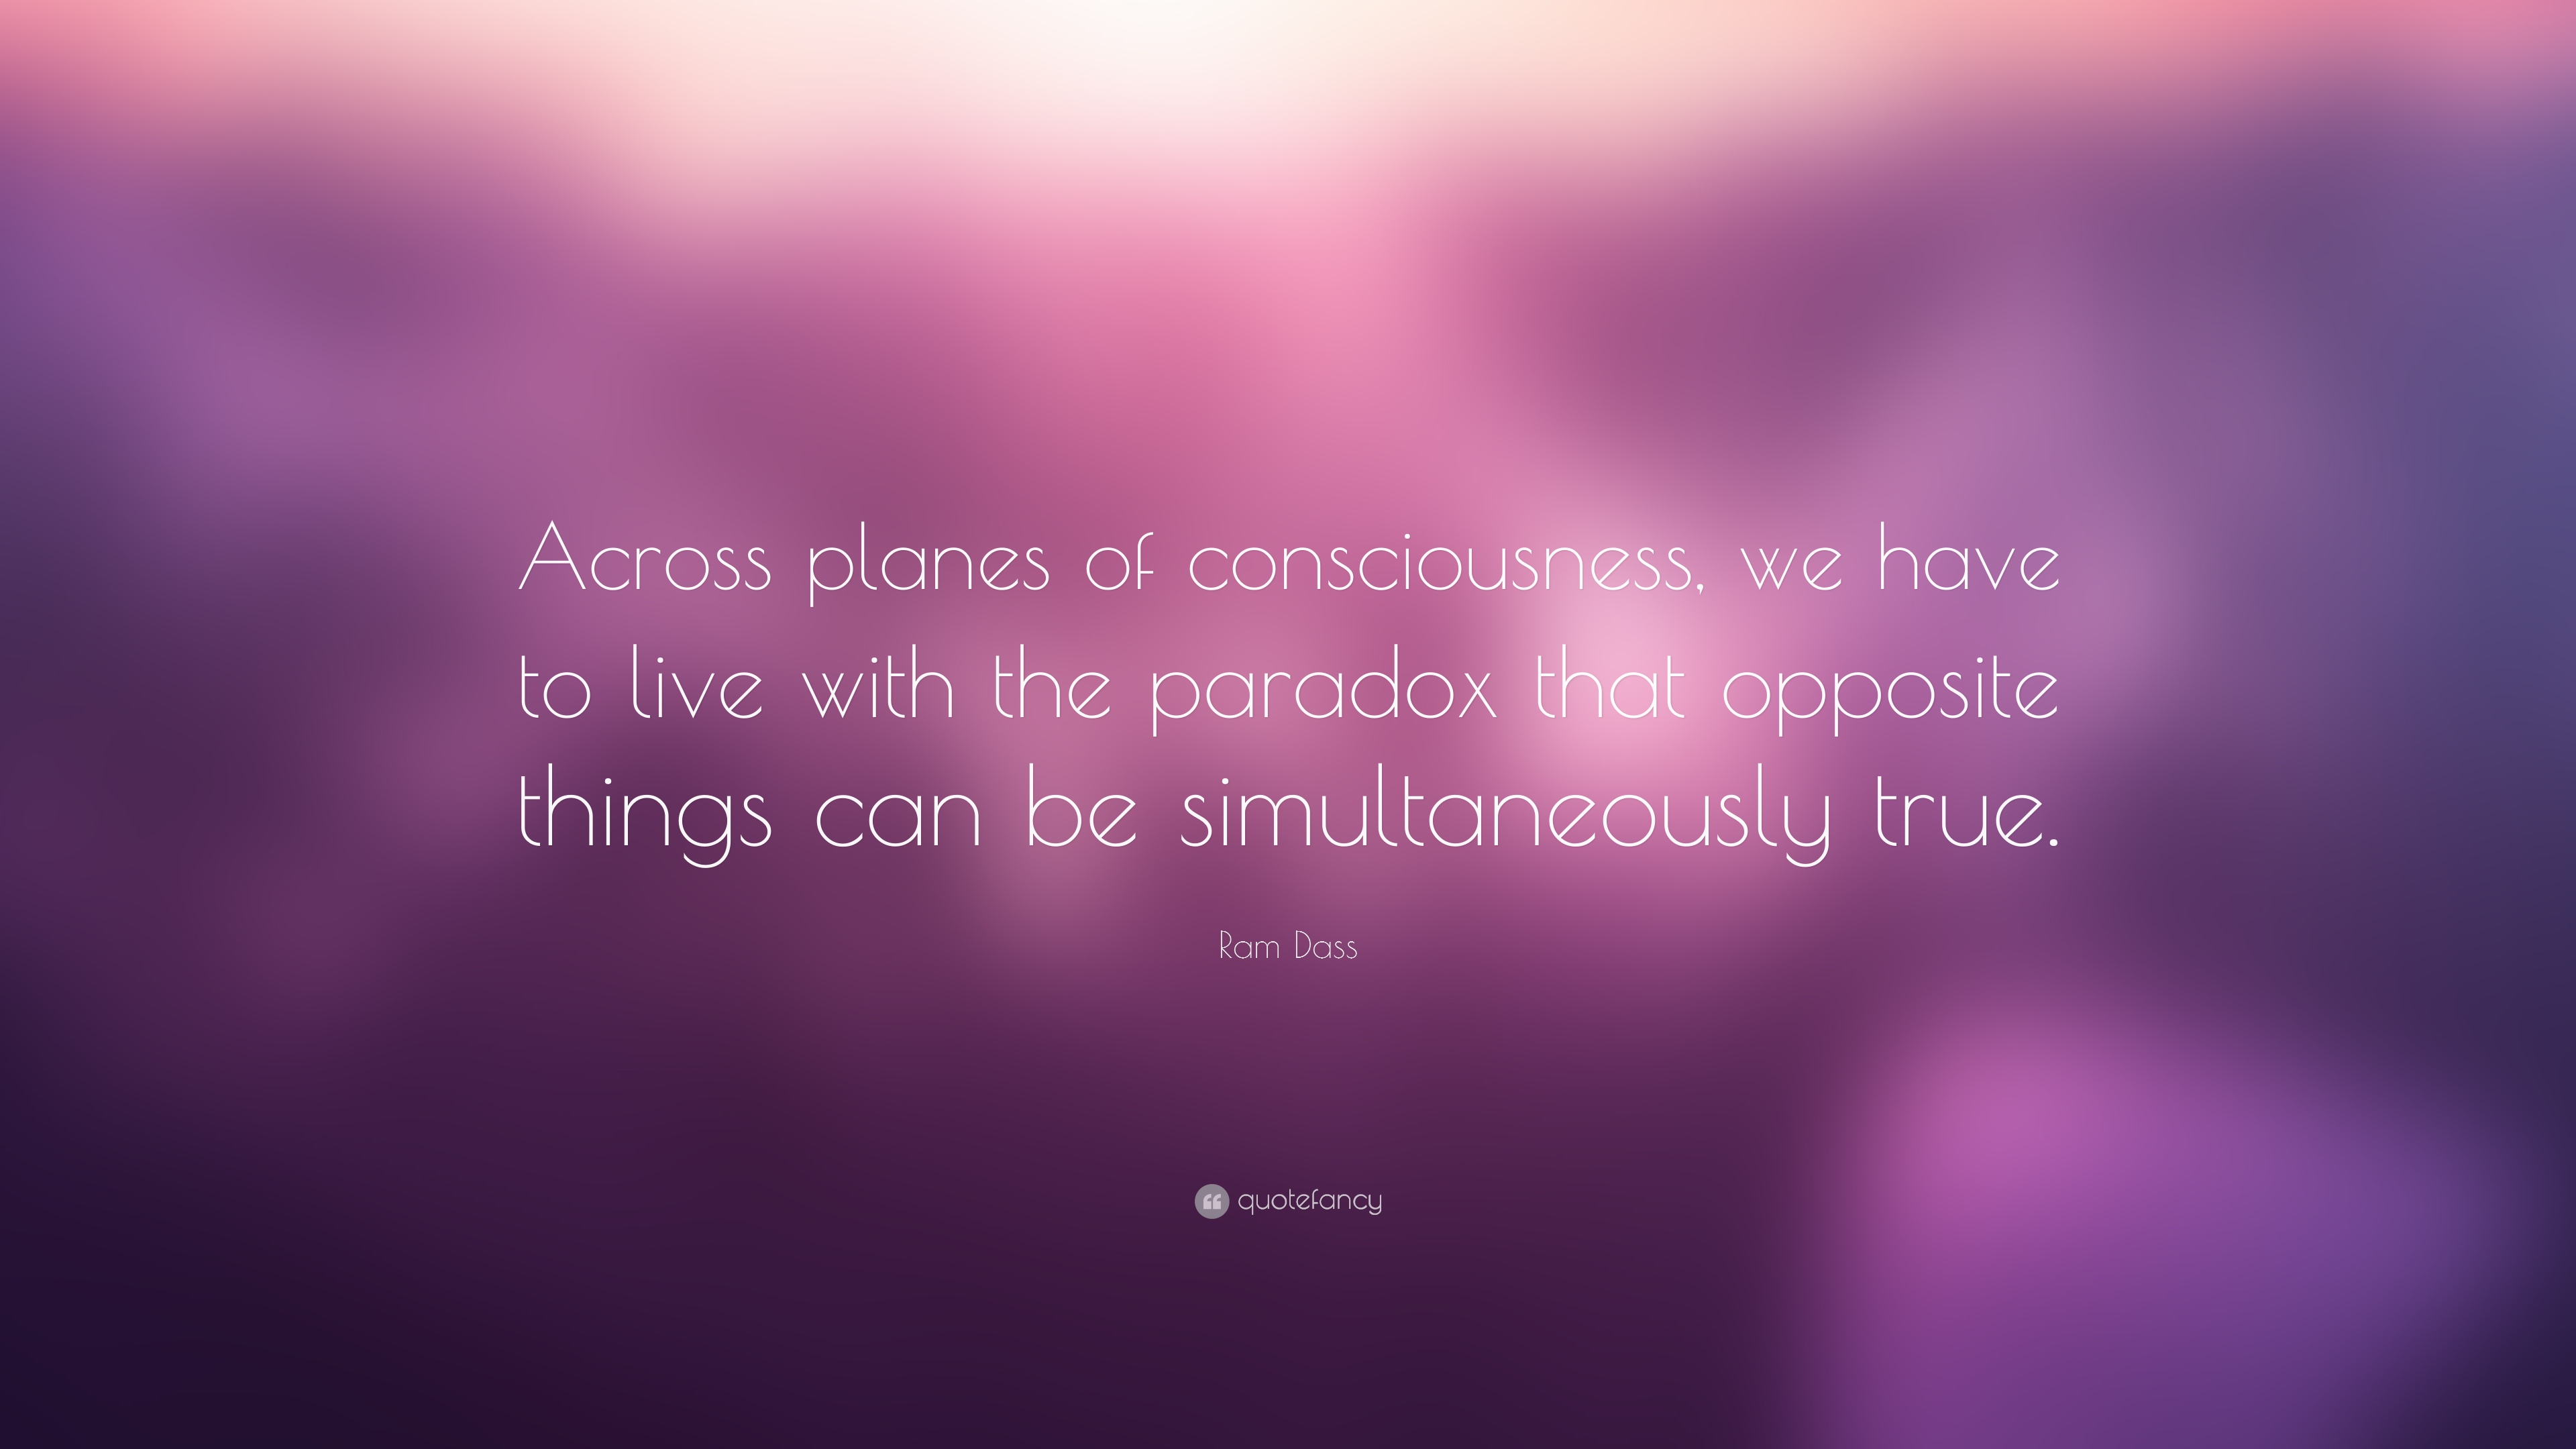 List of paradoxes